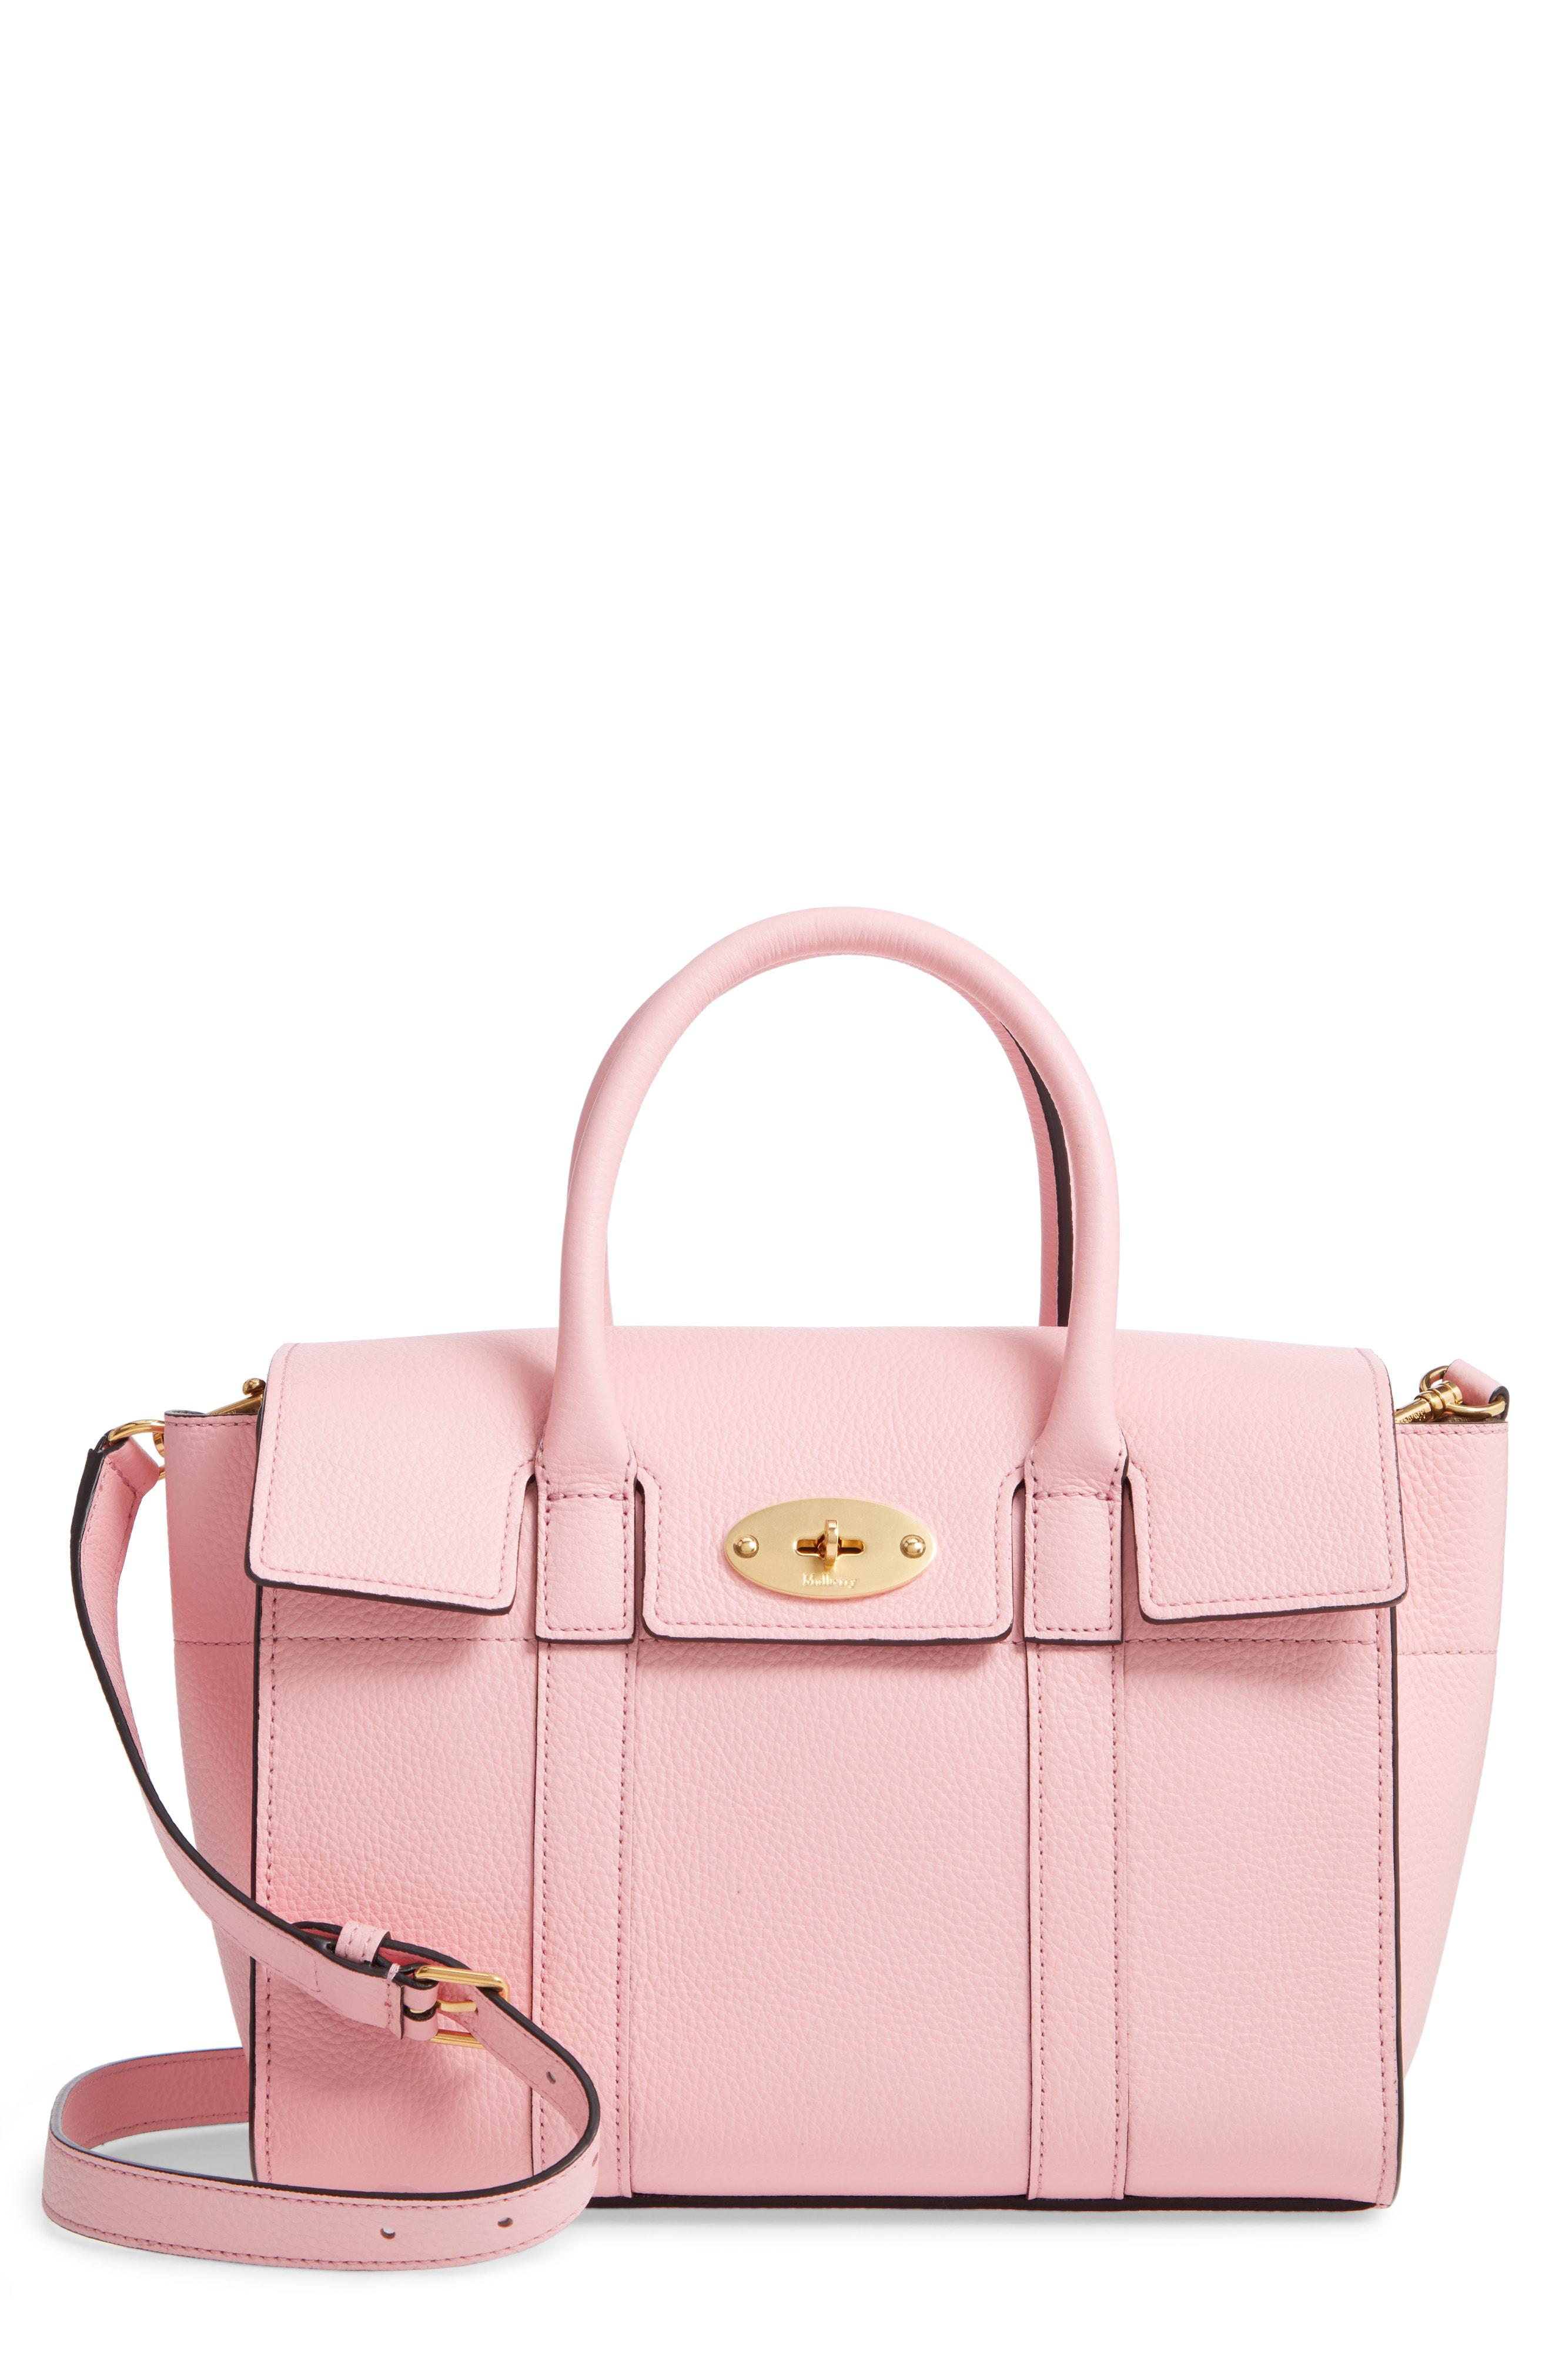 8b9ea2a10f Lyst - Mulberry Small Bayswater Leather Satchel in Pink